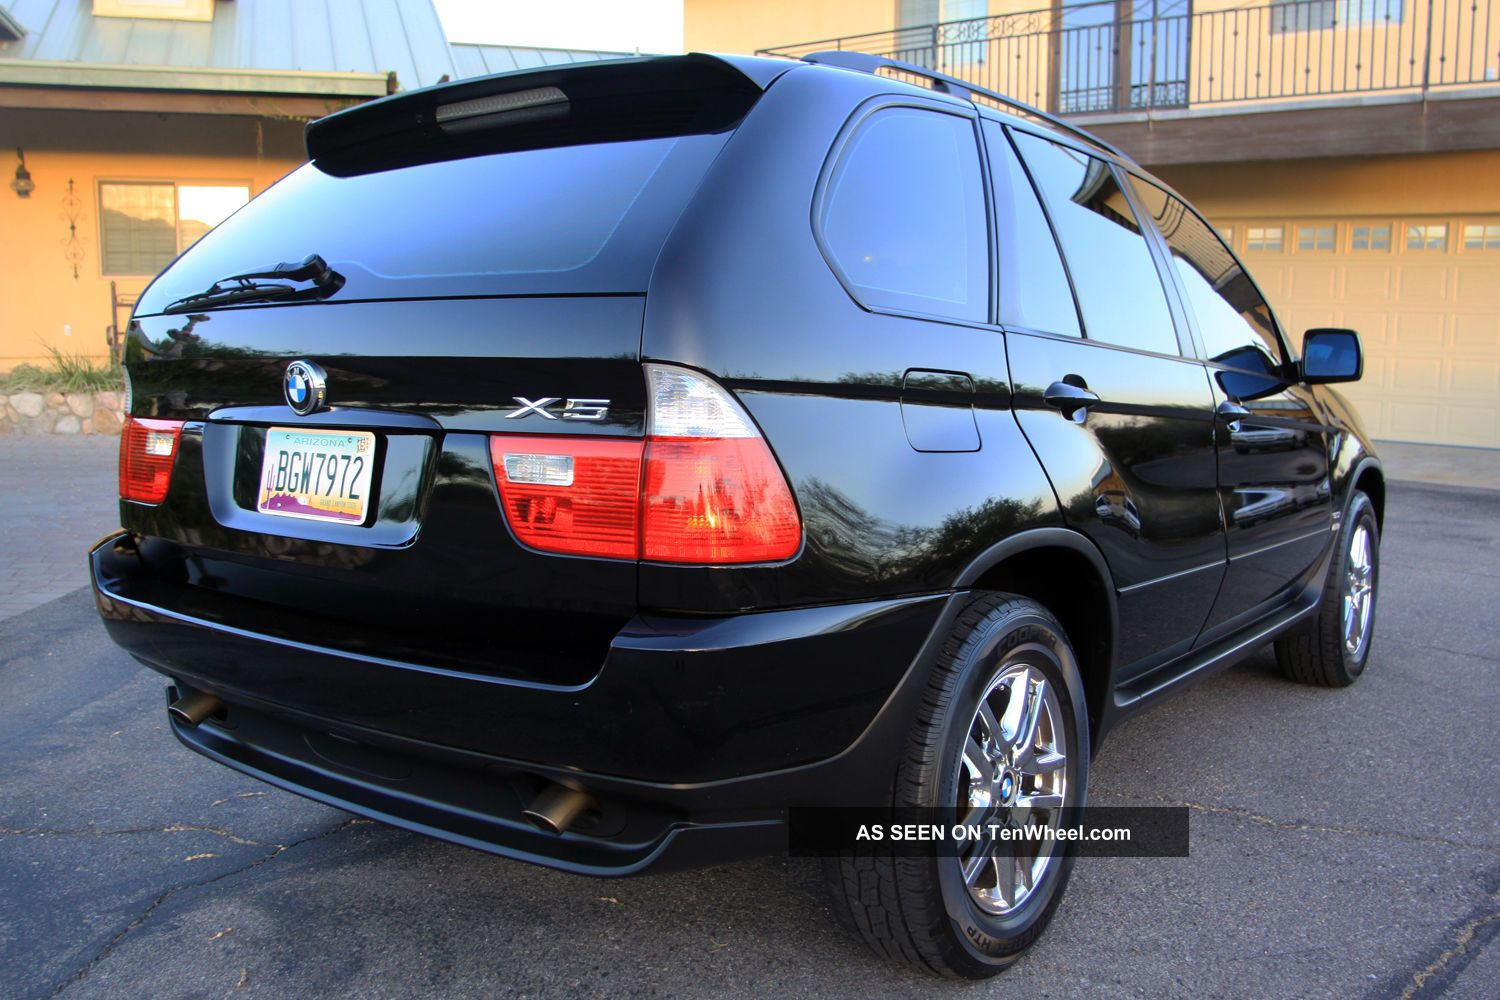 2005 bmw x5 3 0i suv 4 door arizona car 1 owner only 47k mi private party. Black Bedroom Furniture Sets. Home Design Ideas